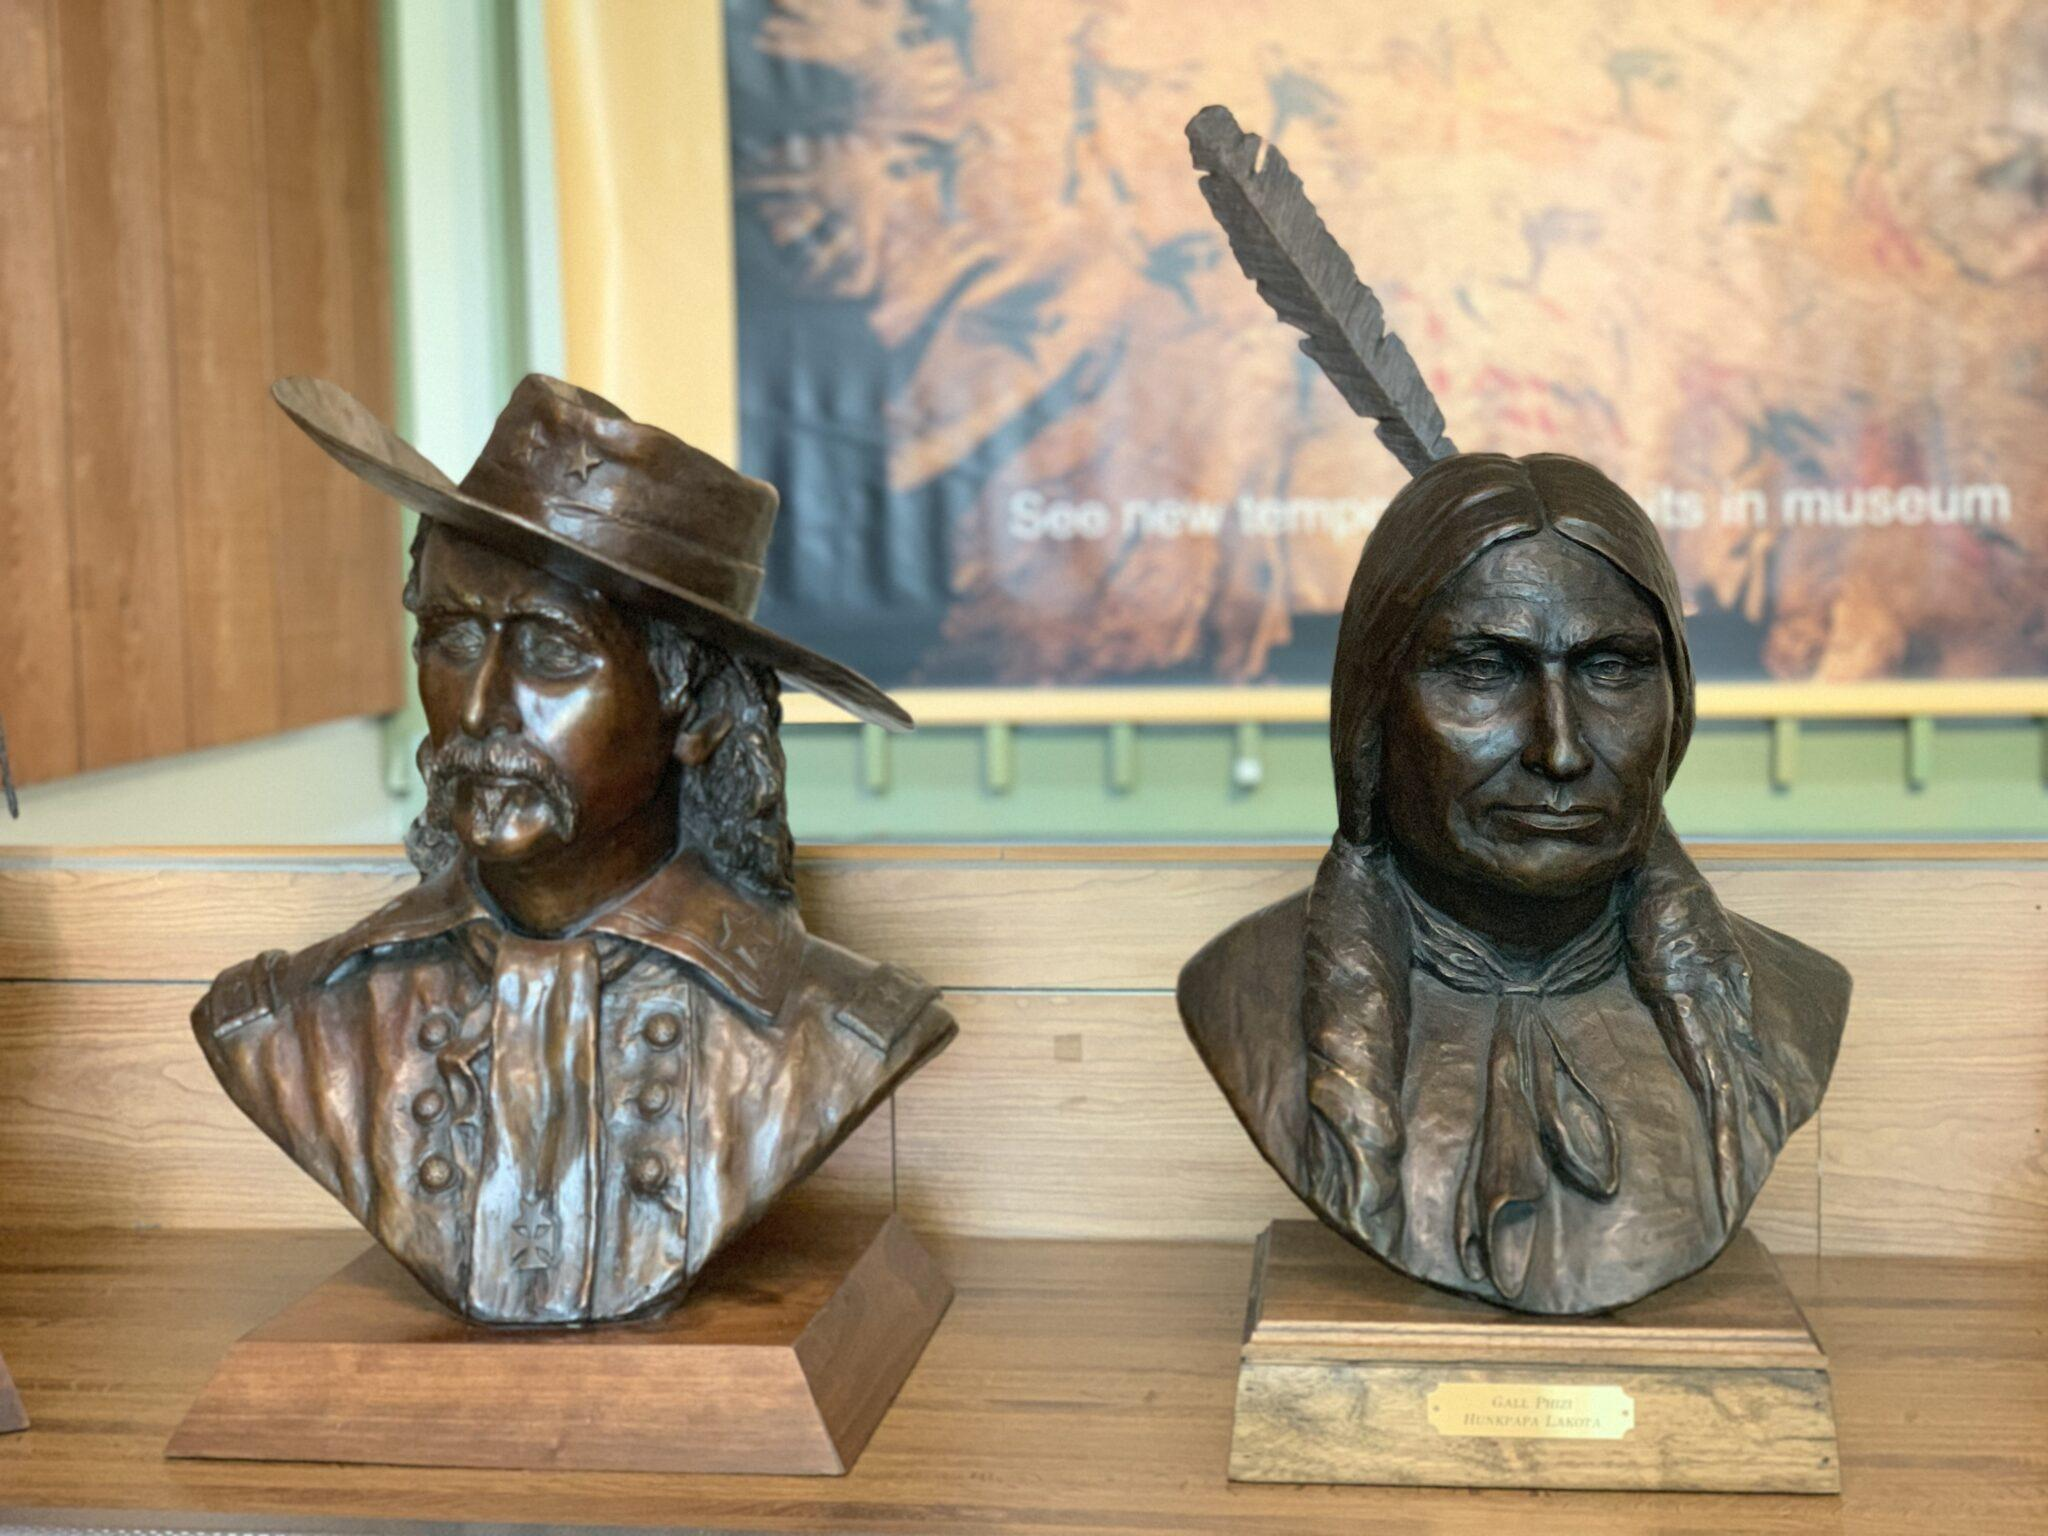 Bust statues of Calvary and Indian leaders